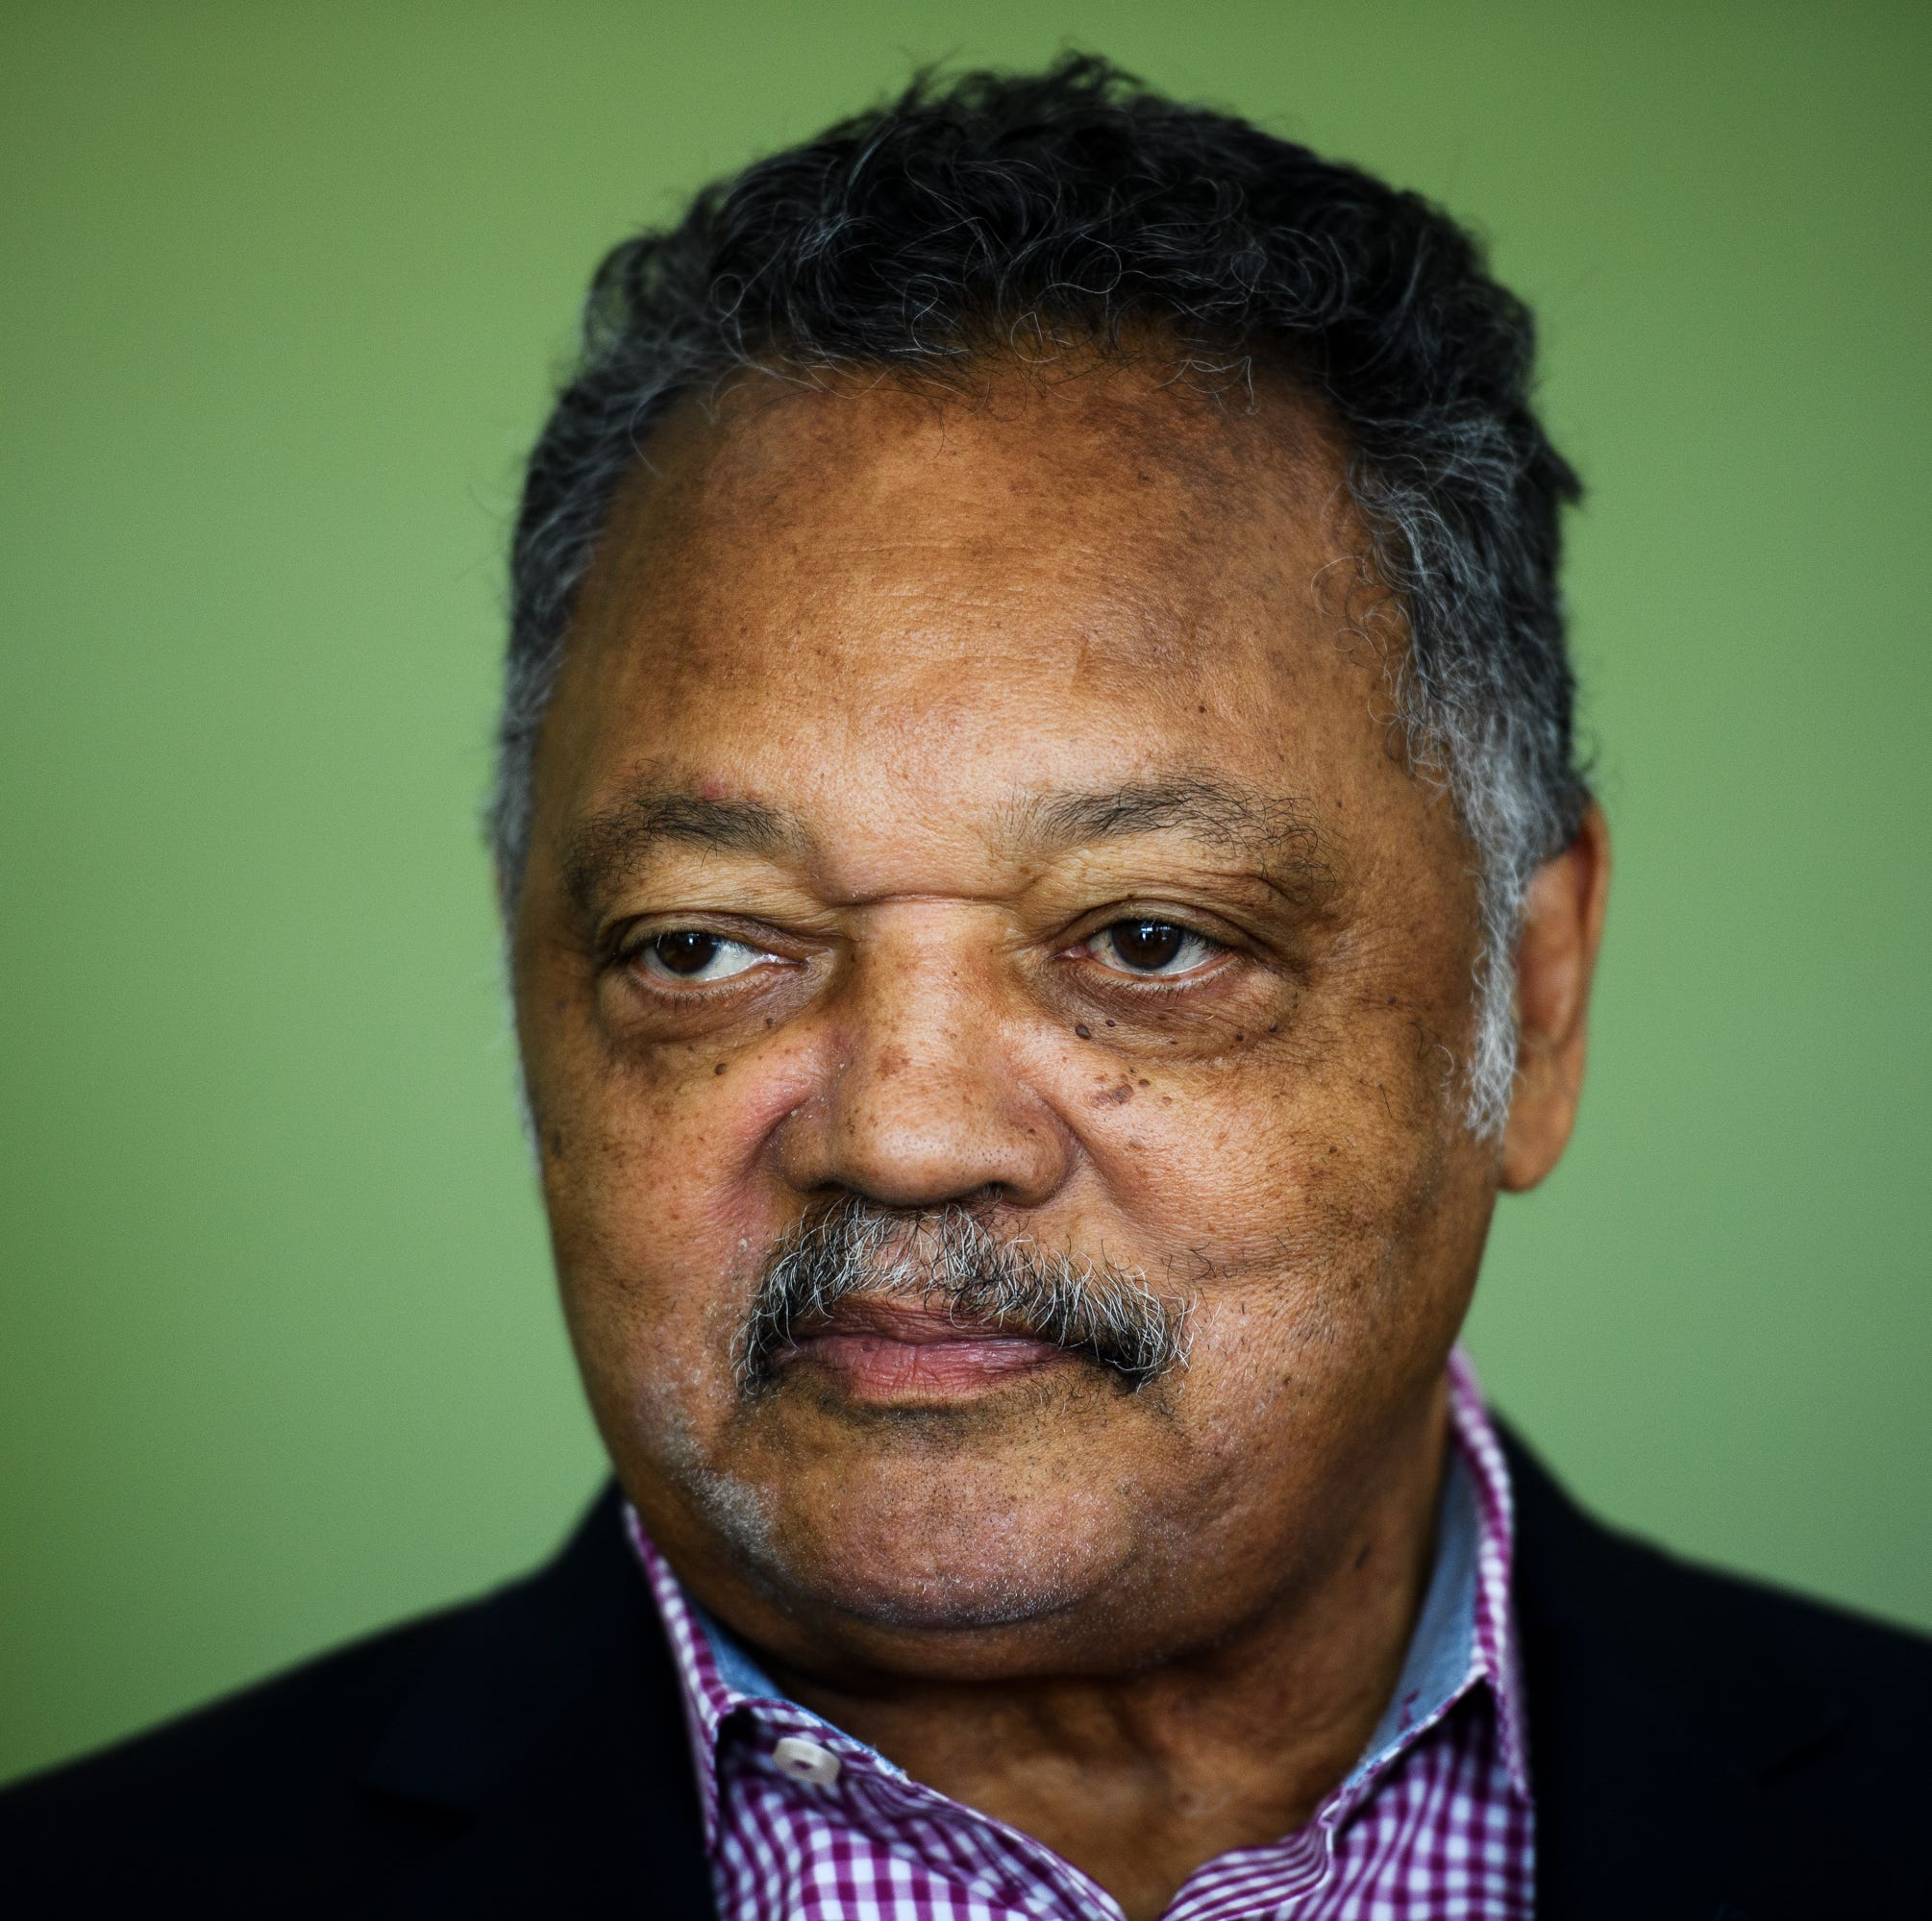 Jesse Jackson: Fast-food meal for Clemson Tigers at White House was 'disgraceful'